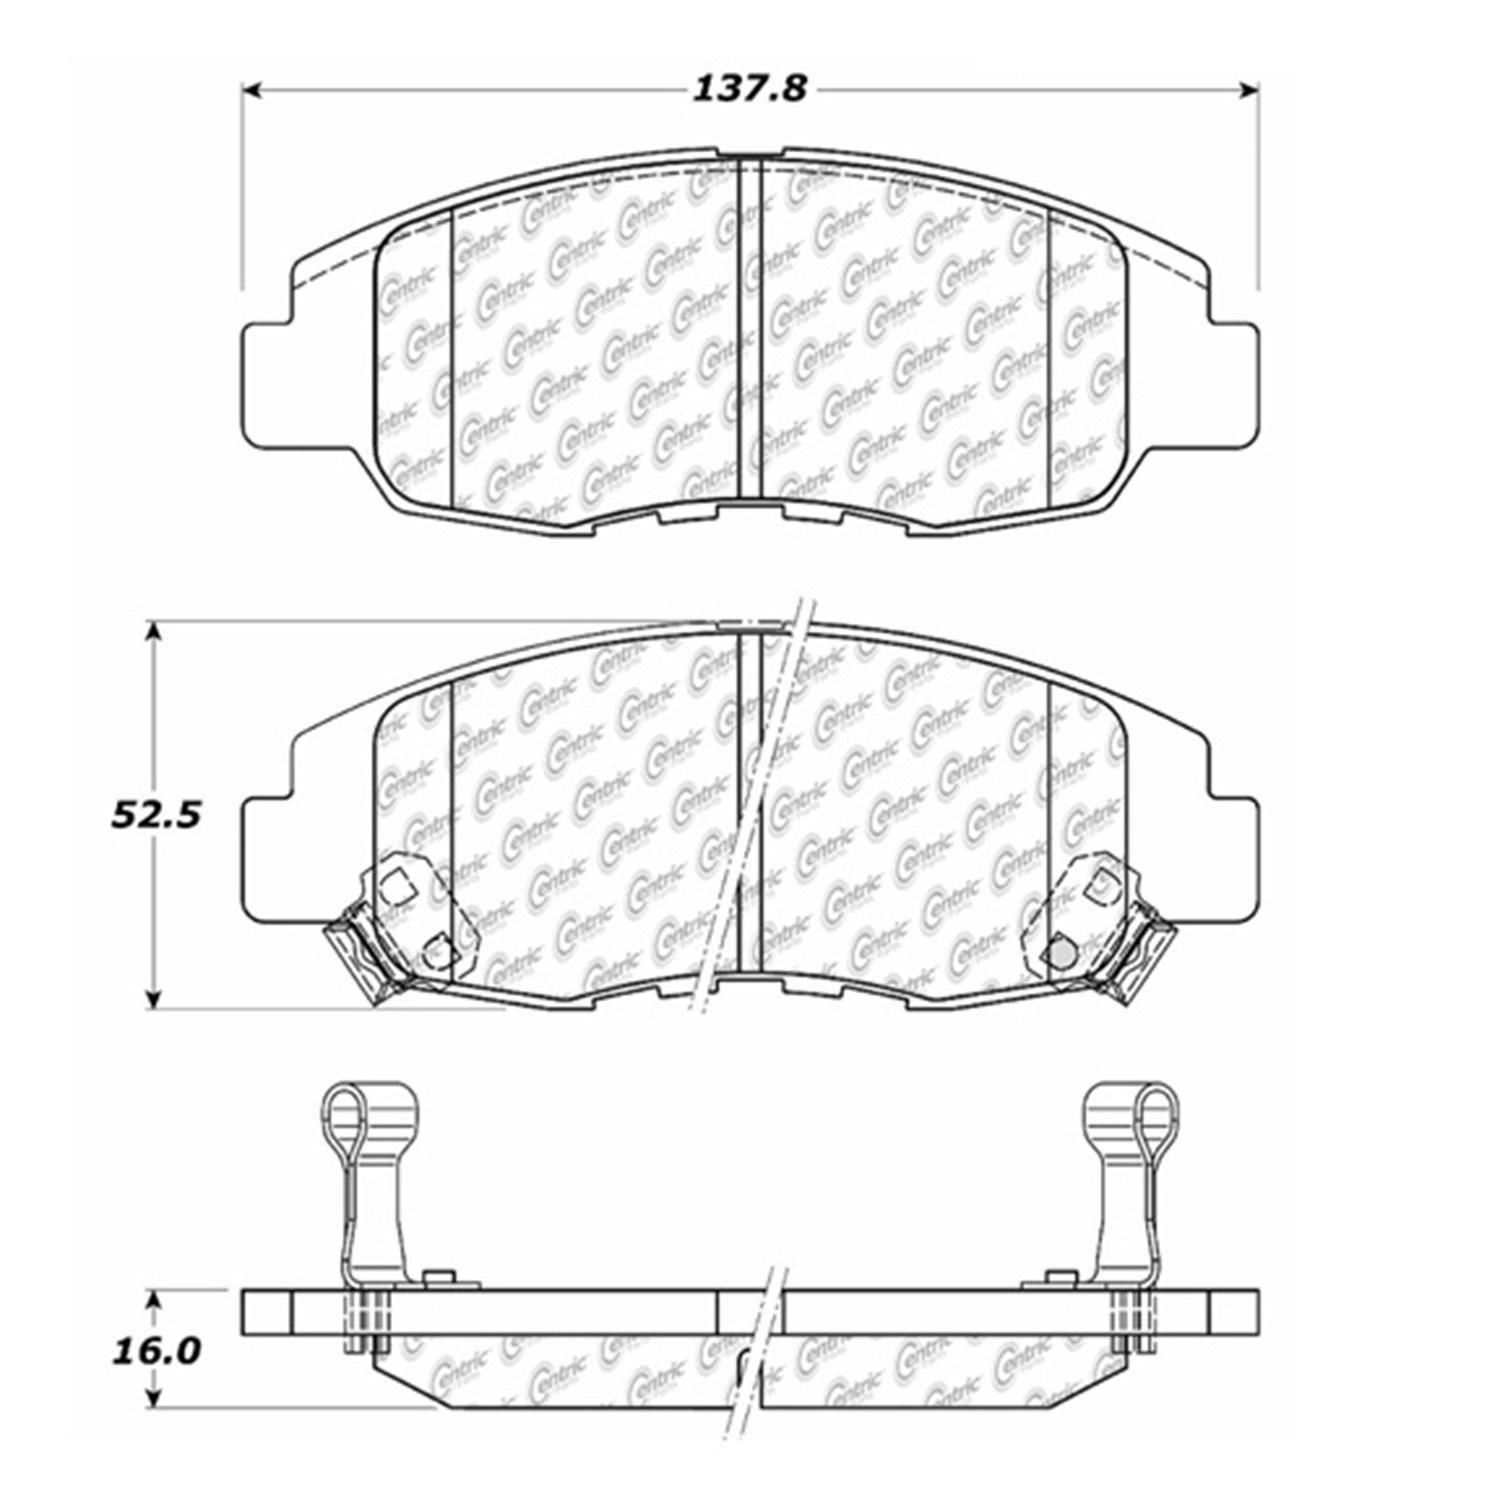 StopTech 105.07640 Disc Brake Pad Fits 96-11 Civic Insight